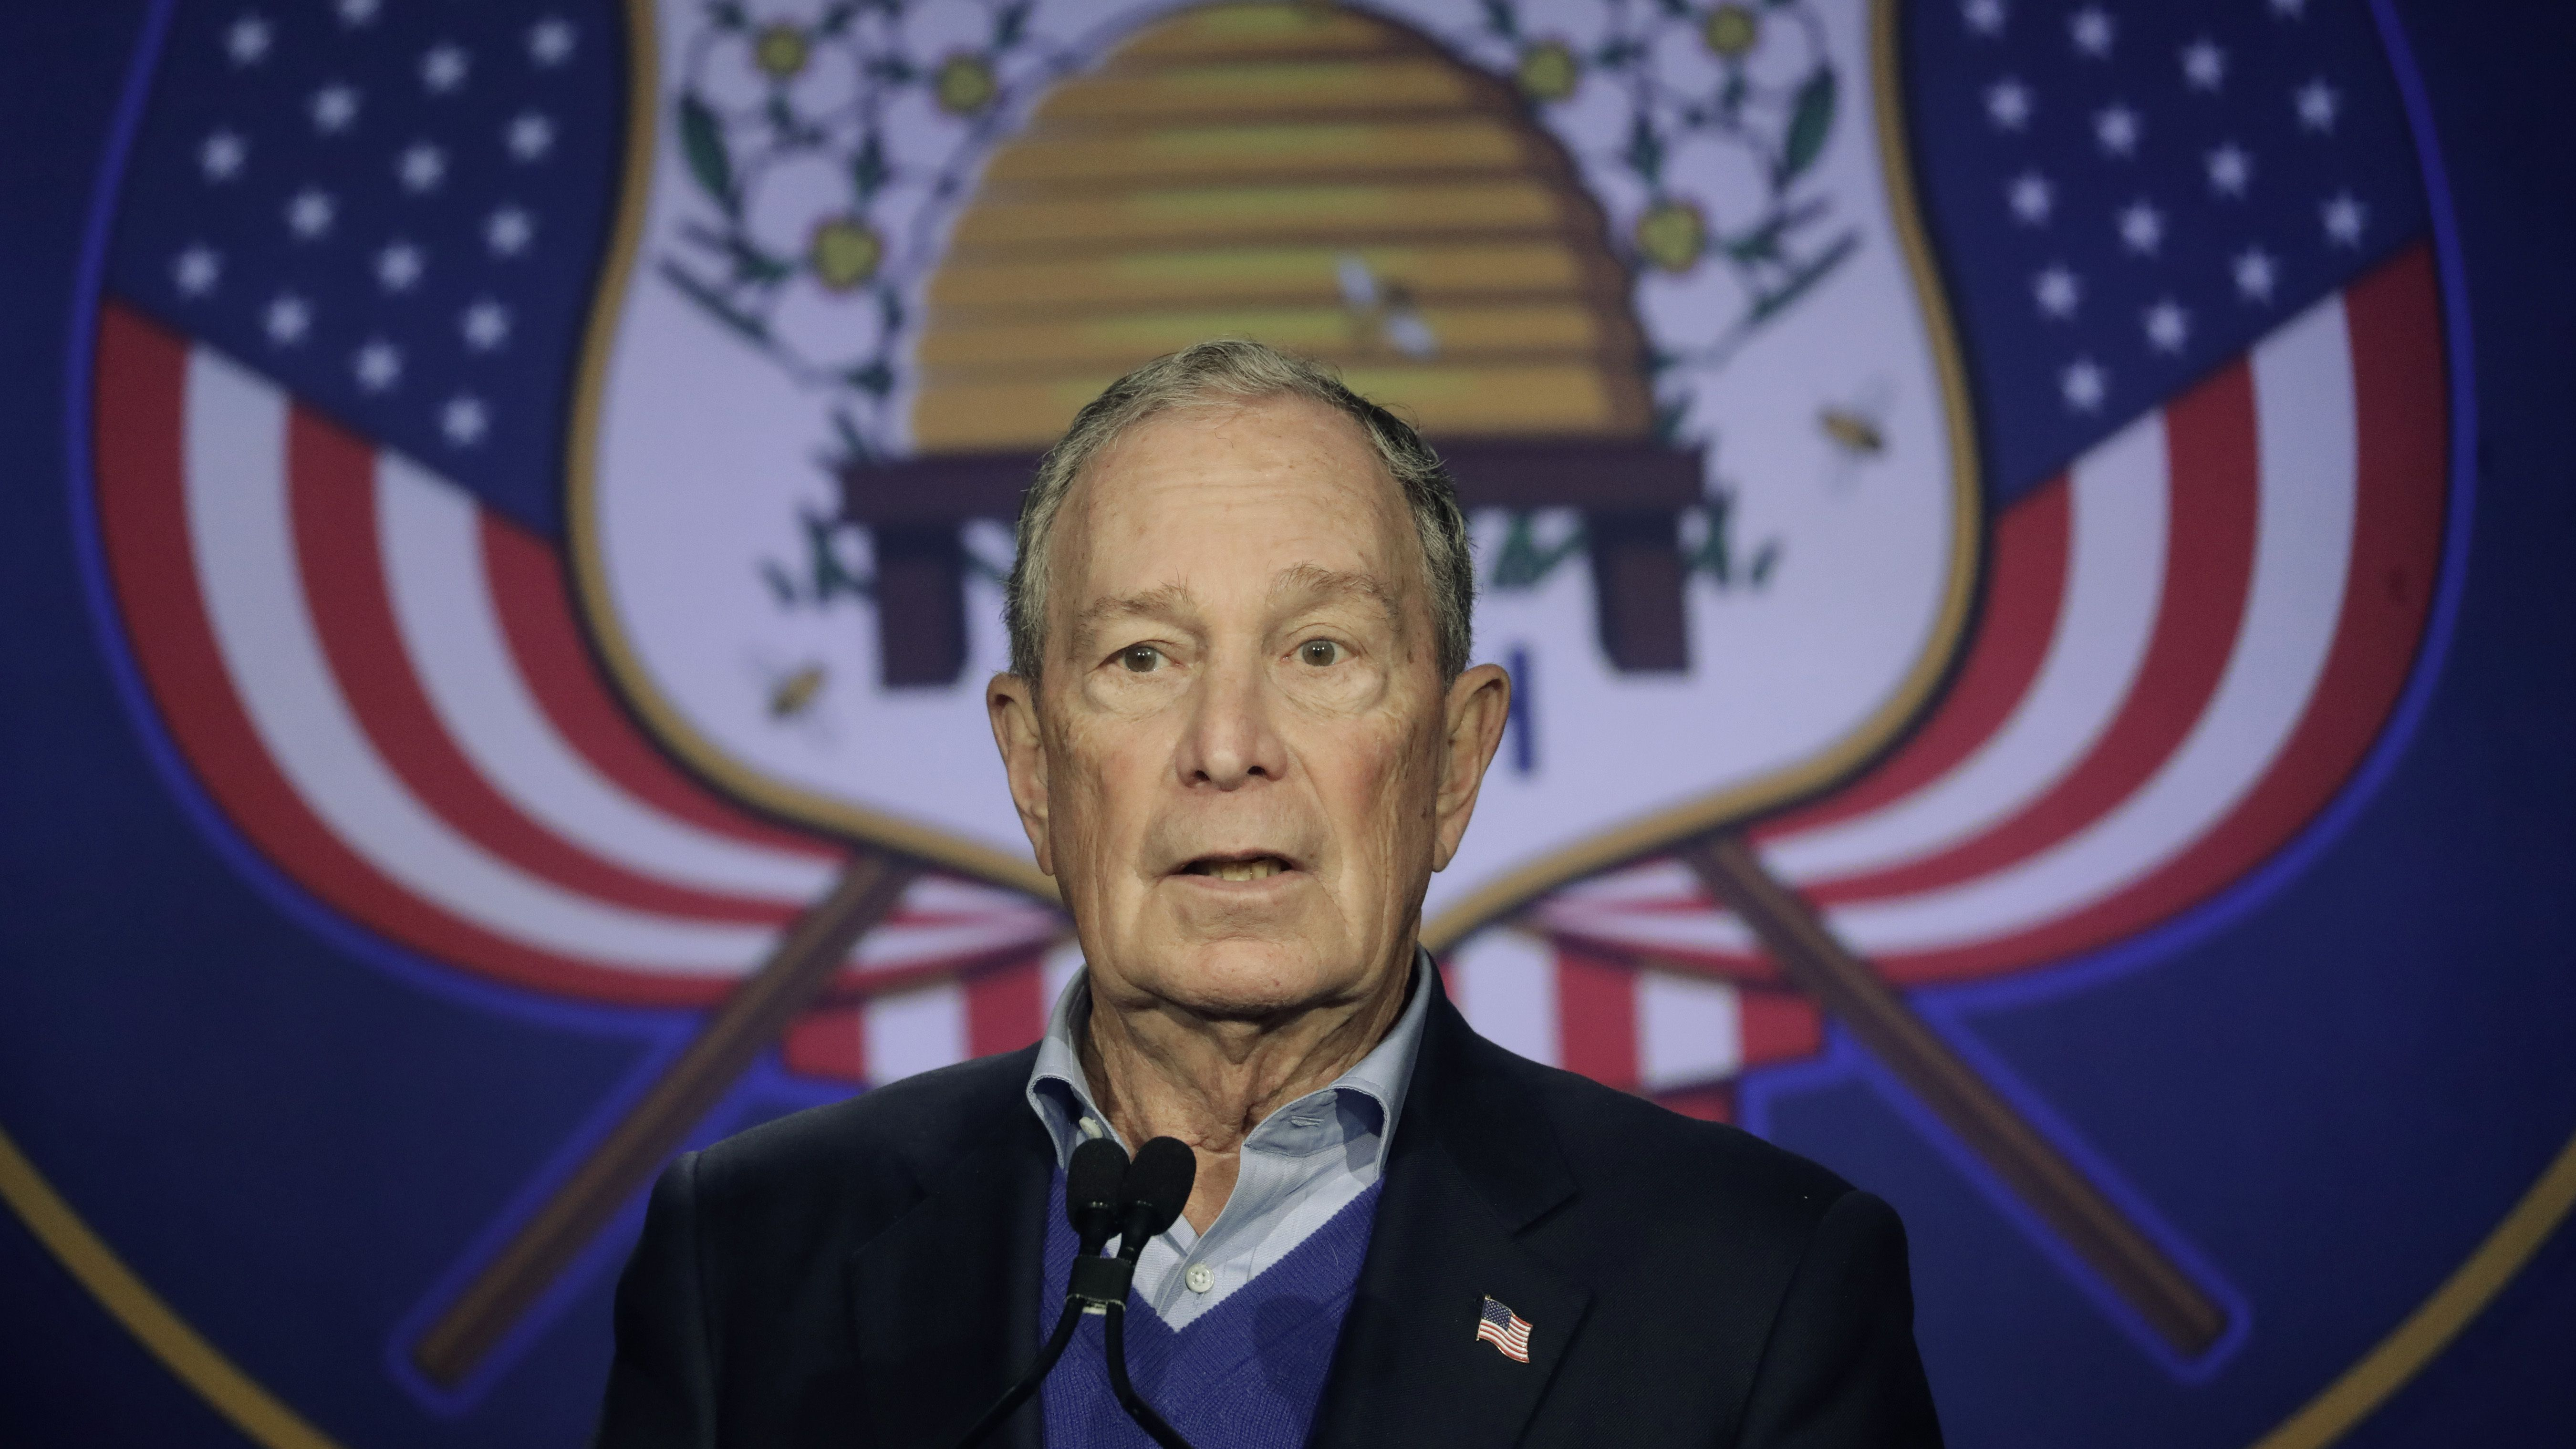 California for Mike Bloomberg Campaign Button 2020 President